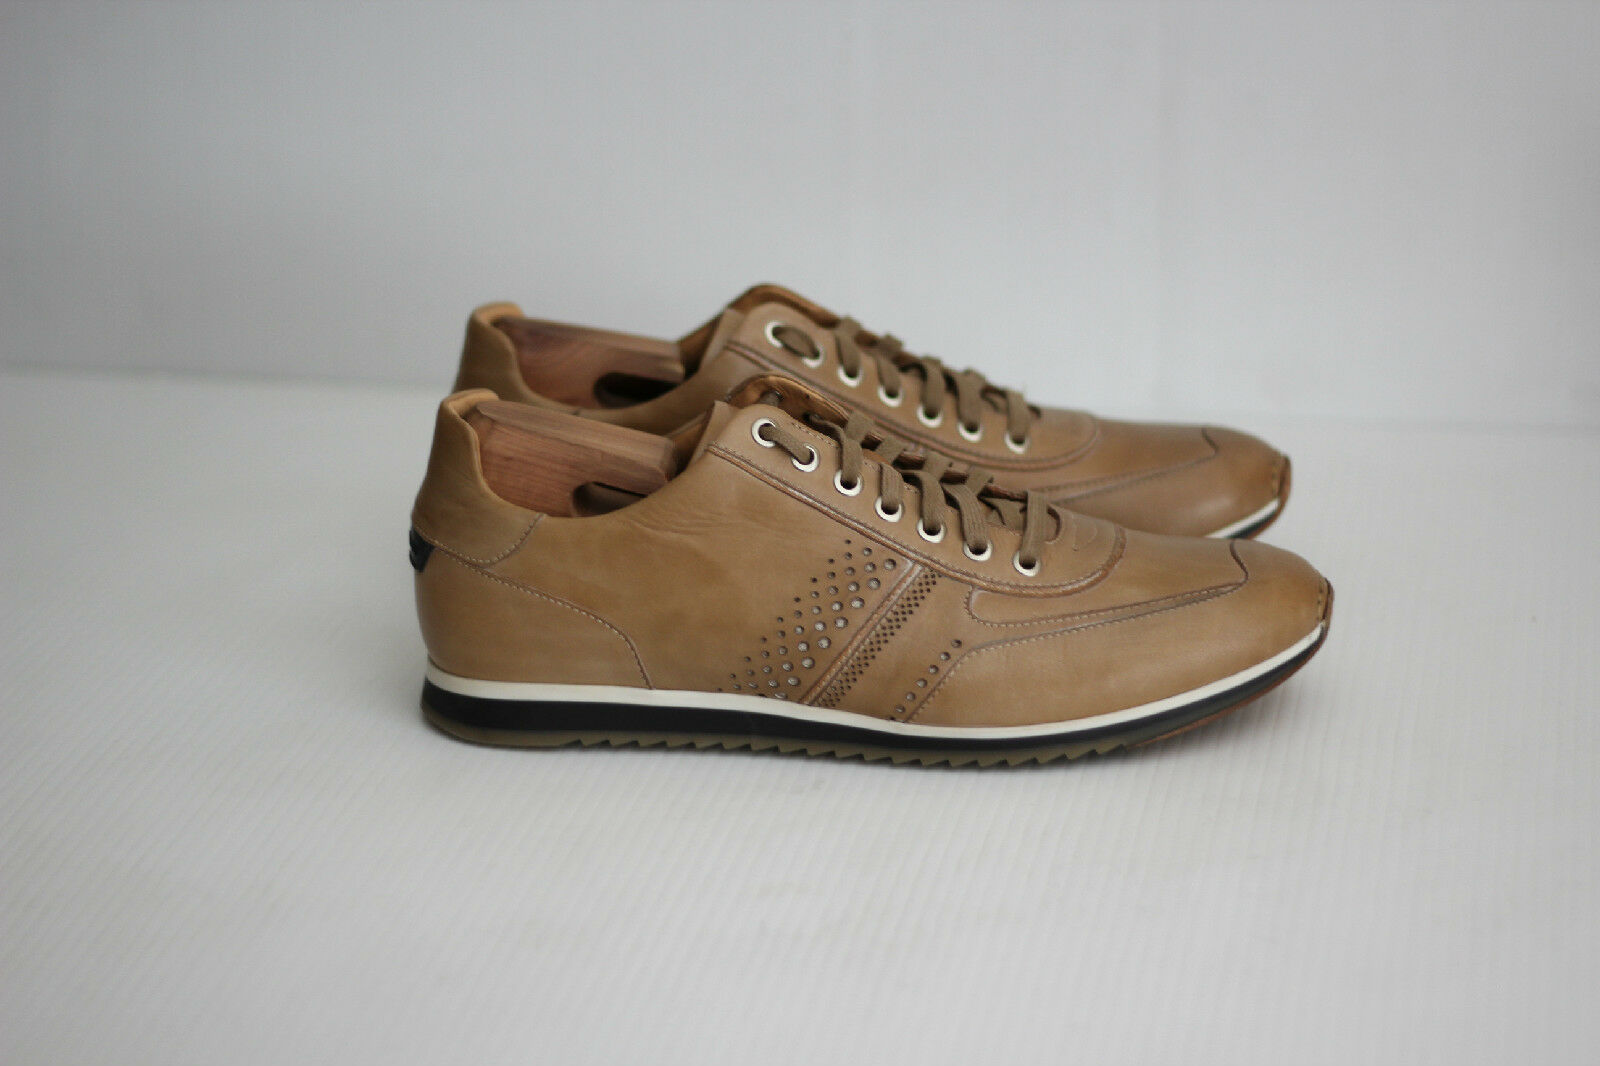 Magnanni 'Cristian' Lace Up Leather Sneakers - Natural Taupe -  Size 9.5 M (B98)